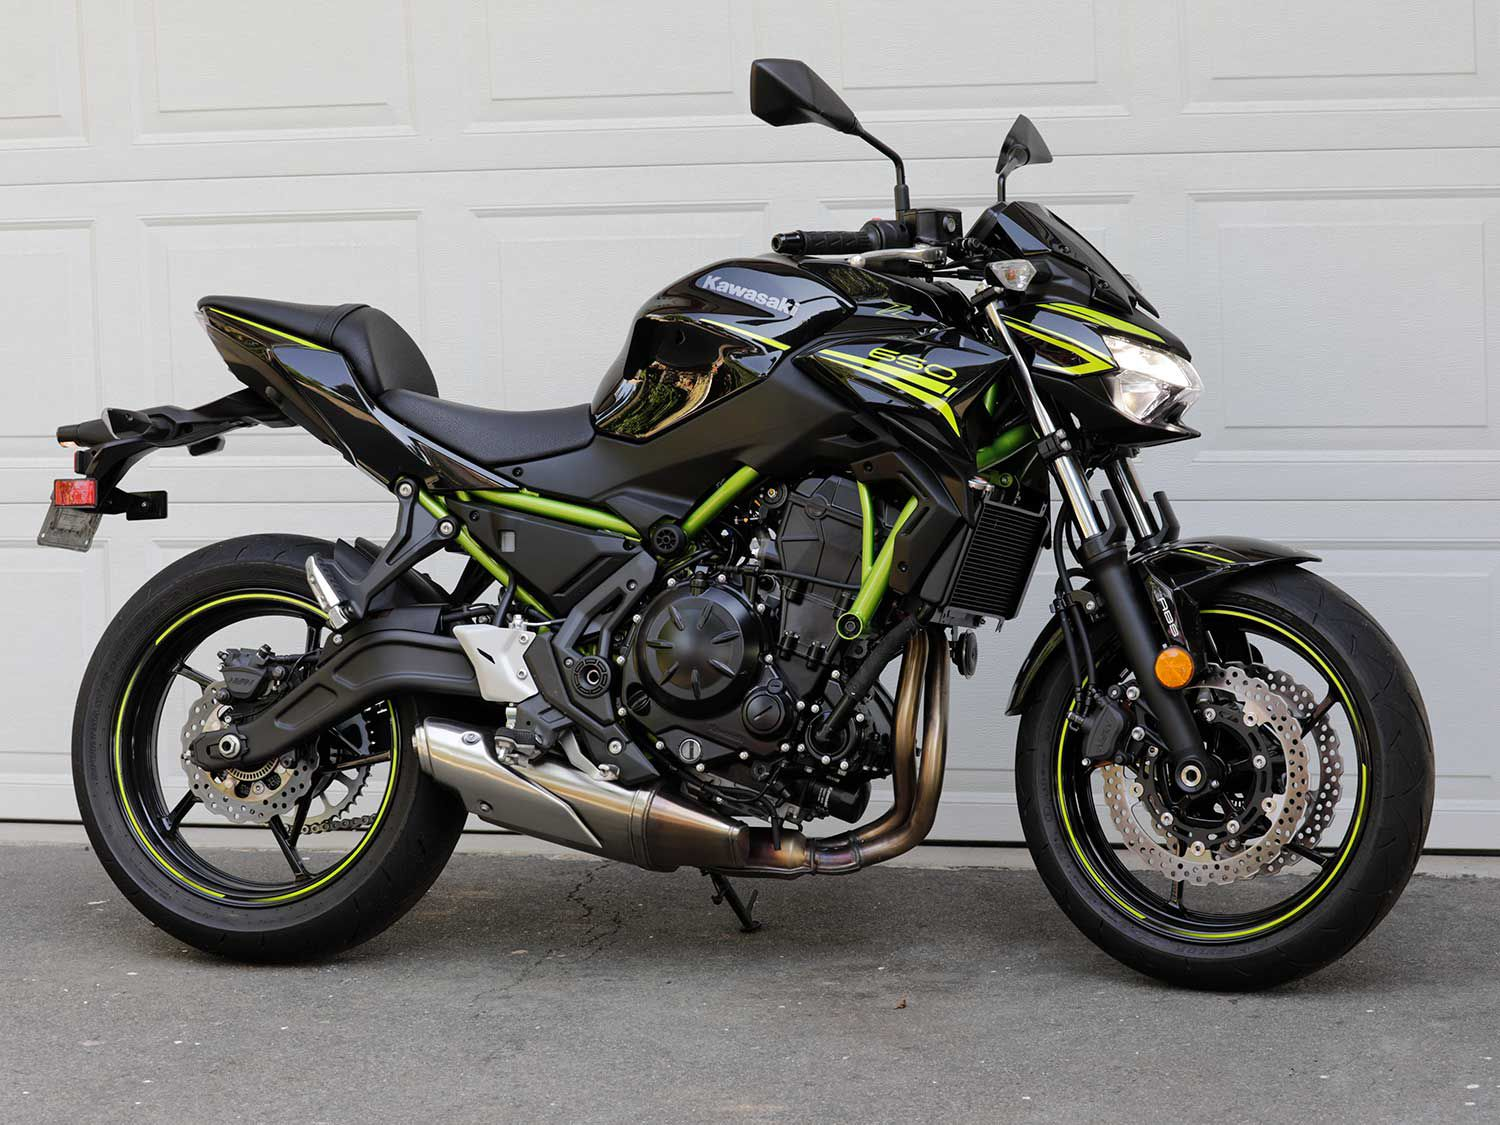 We test ride Kawasaki's mildly updated 2020 Z650 ABS in this video review.